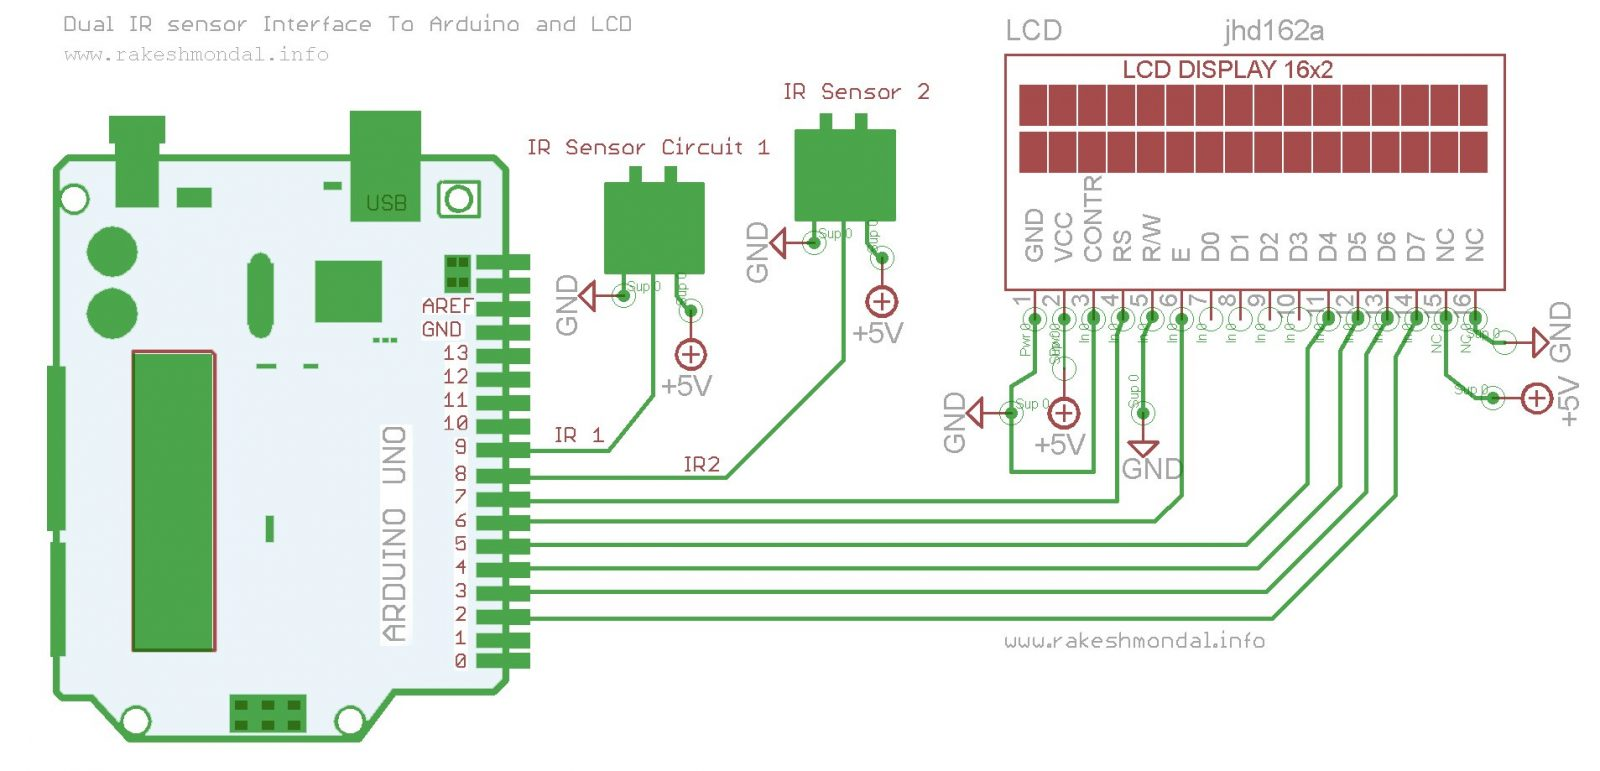 Interface Single And Dual Ir Infrared Sensor With Pic18f4550 Lcd How To Build Detector Circuit Diagram Arduino Schematich